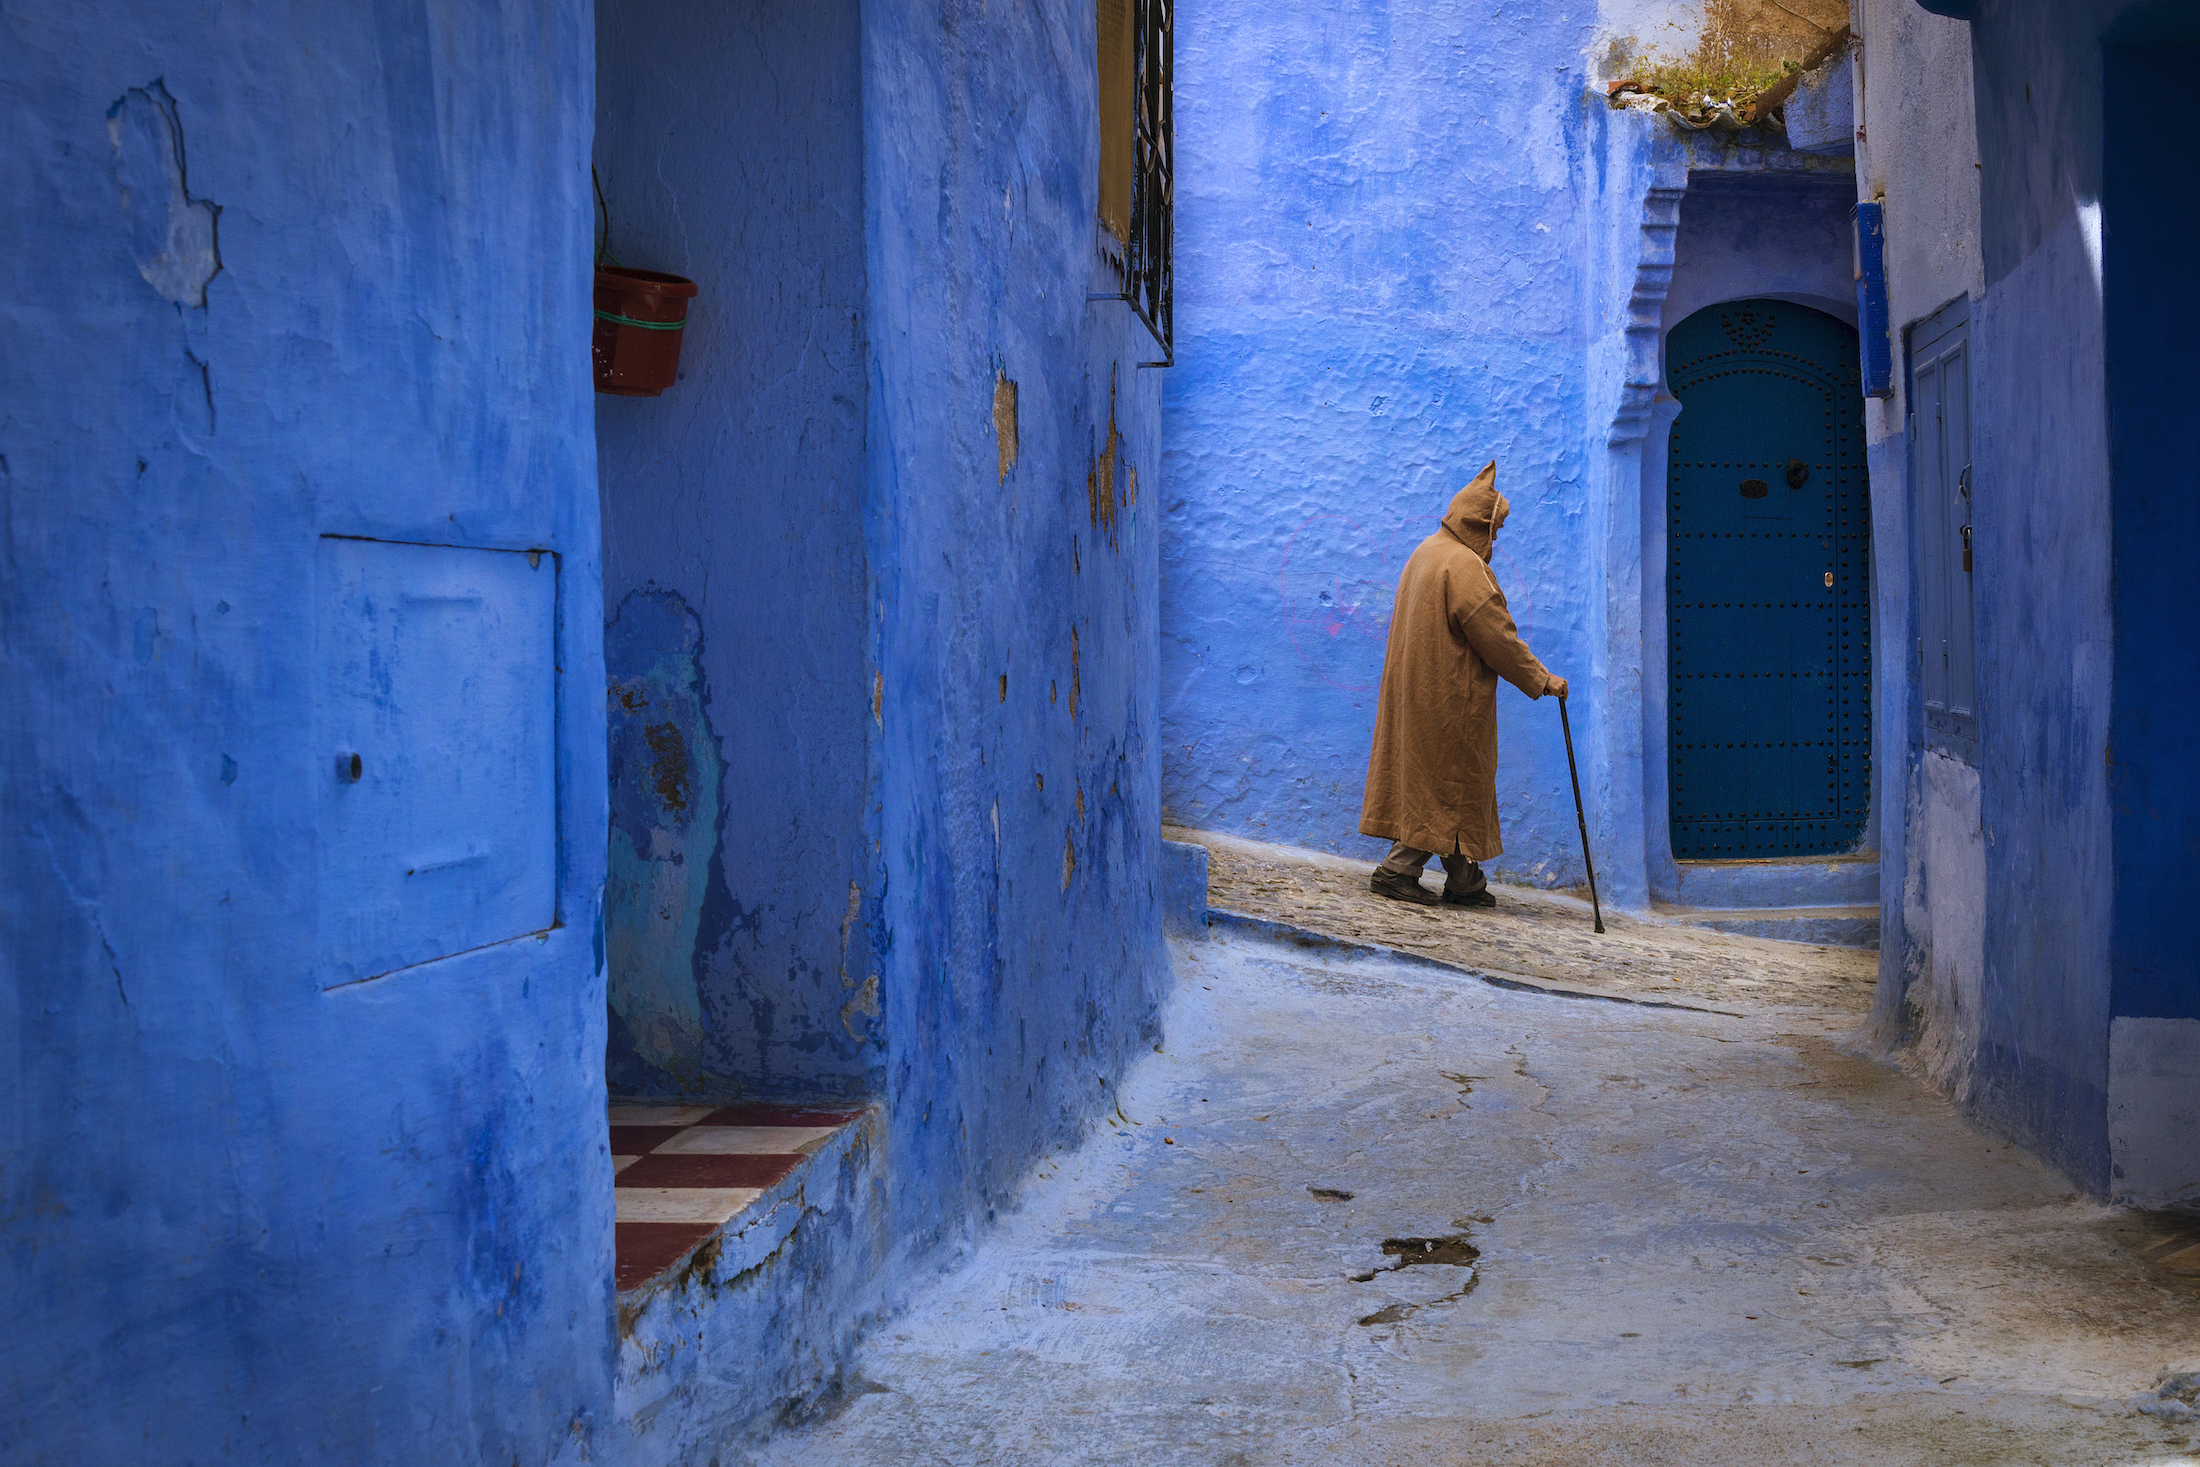 Berber man walking in a narrow street in the town of Chefchaouen in Morocco, North Africa